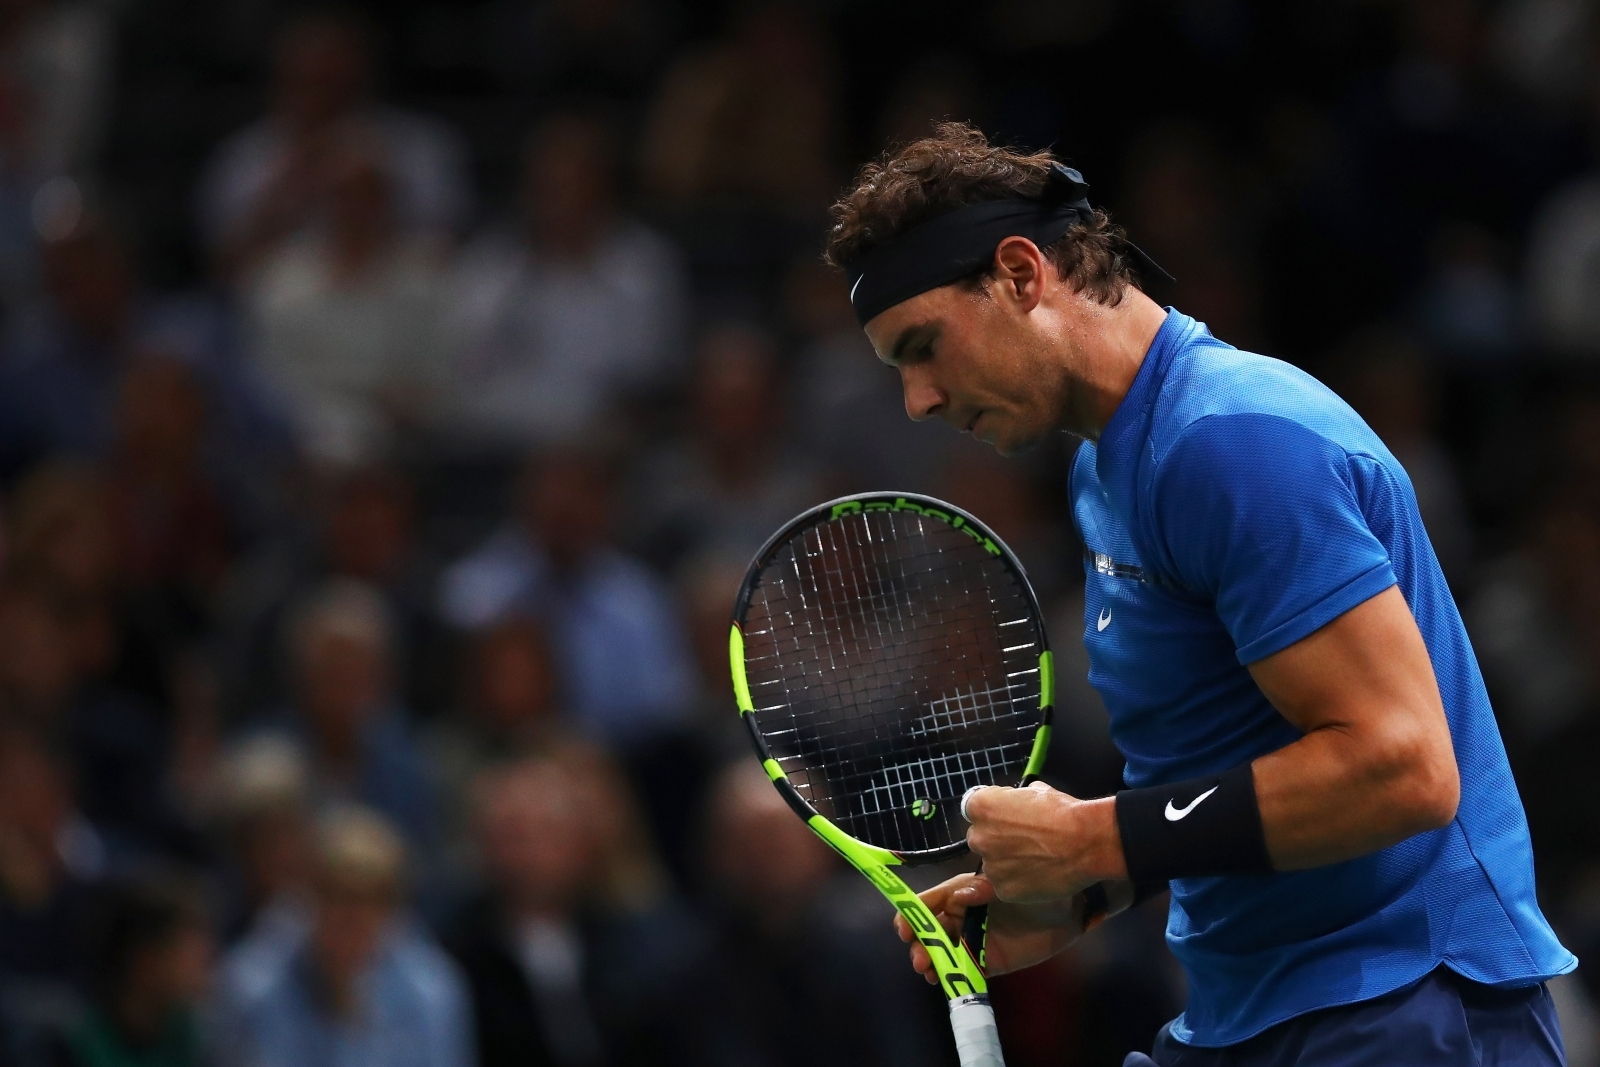 Nadal seals year-end No.1 ranking for 4th time